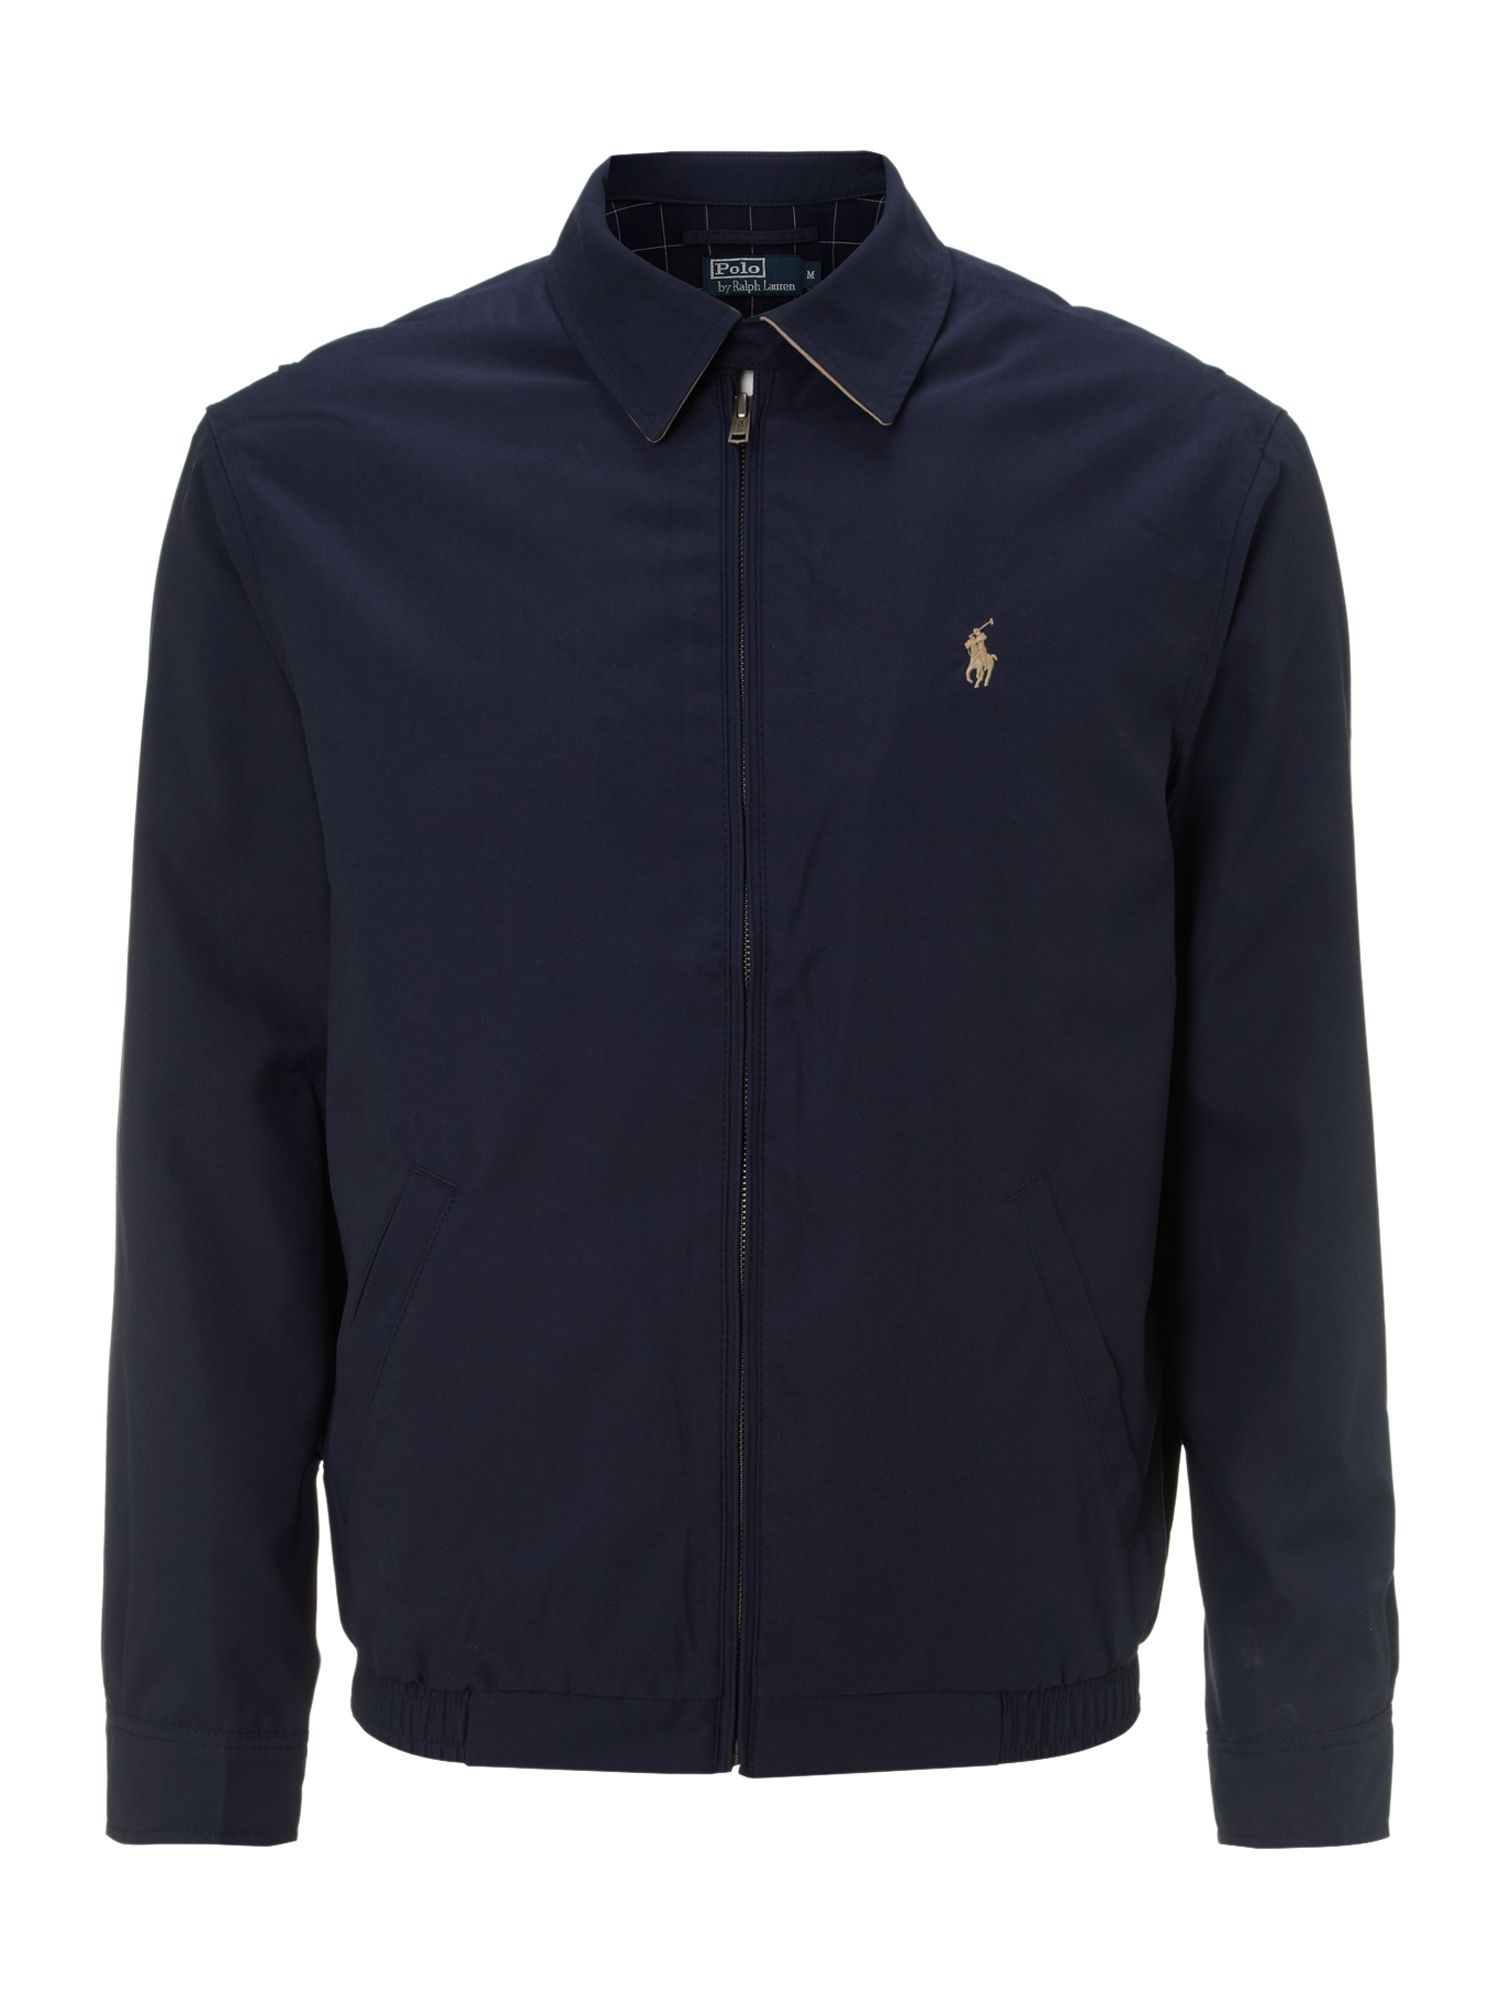 Polo Ralph Lauren Men's Not waterproof Coats and Jackets at House ...